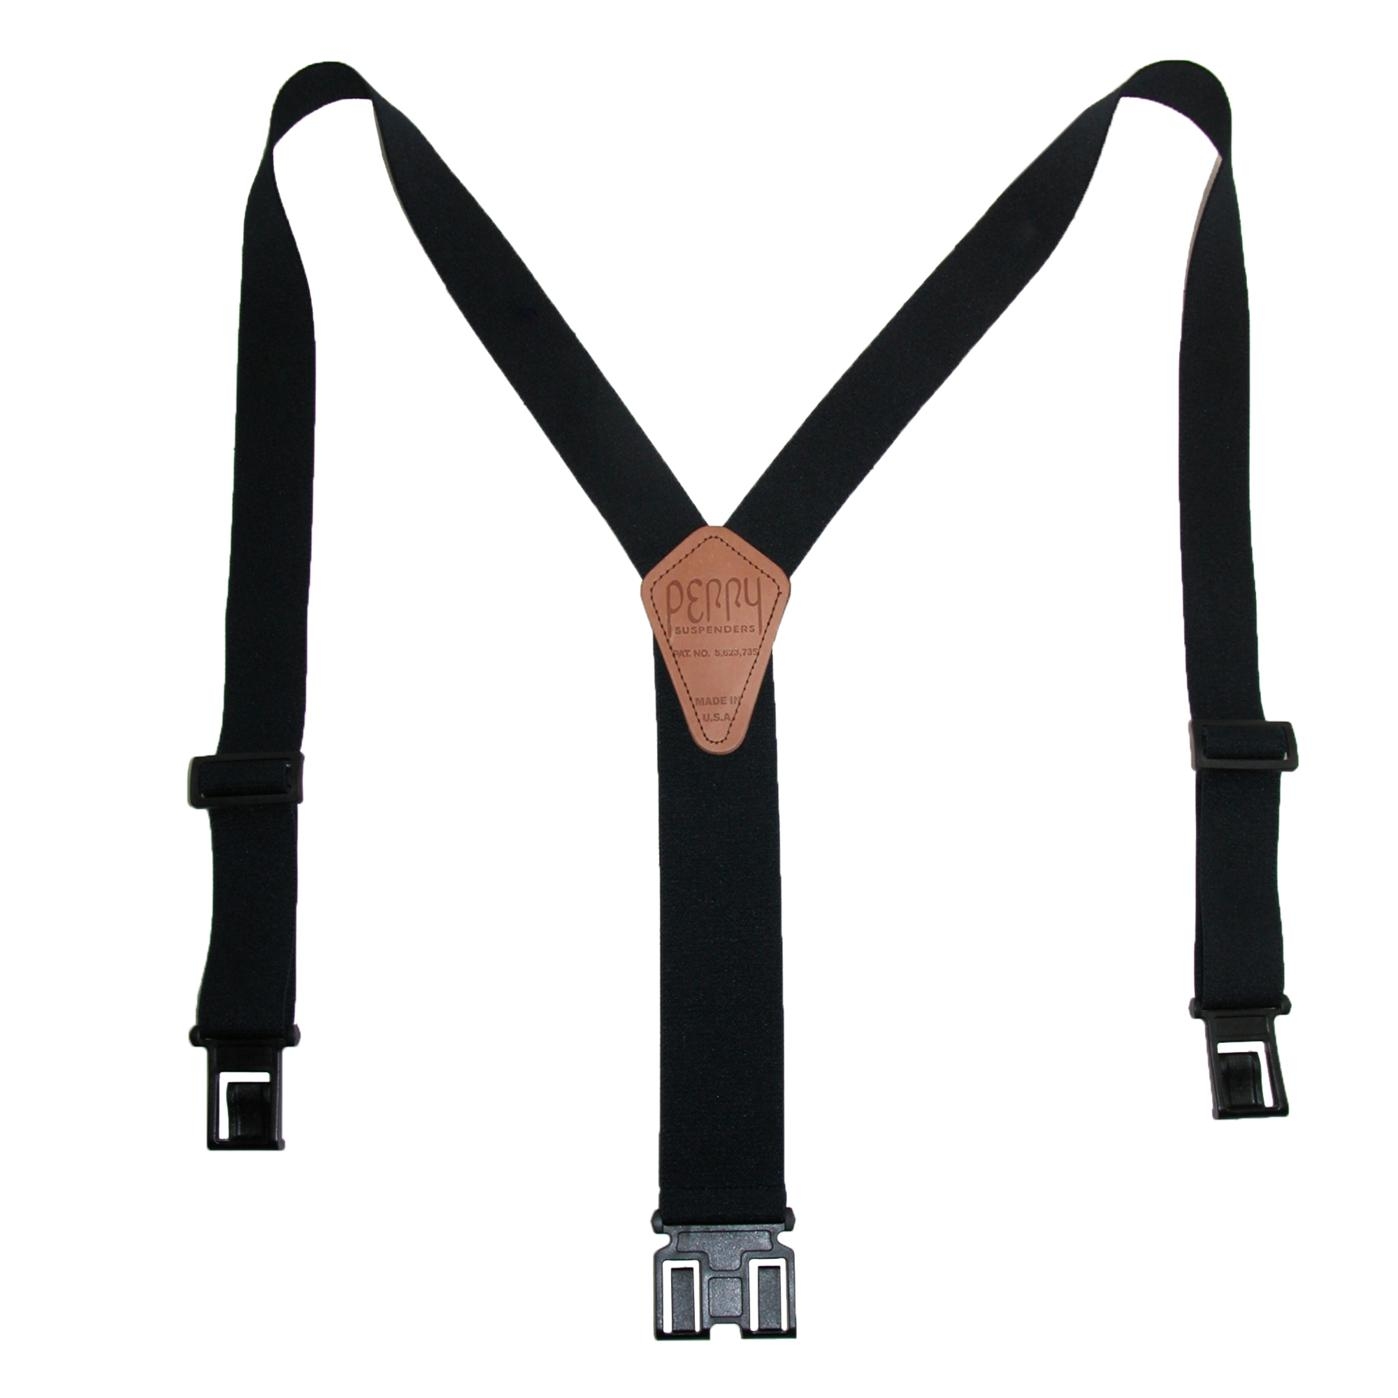 Perry Suspenders Men's Elastic Hook End Suspenders